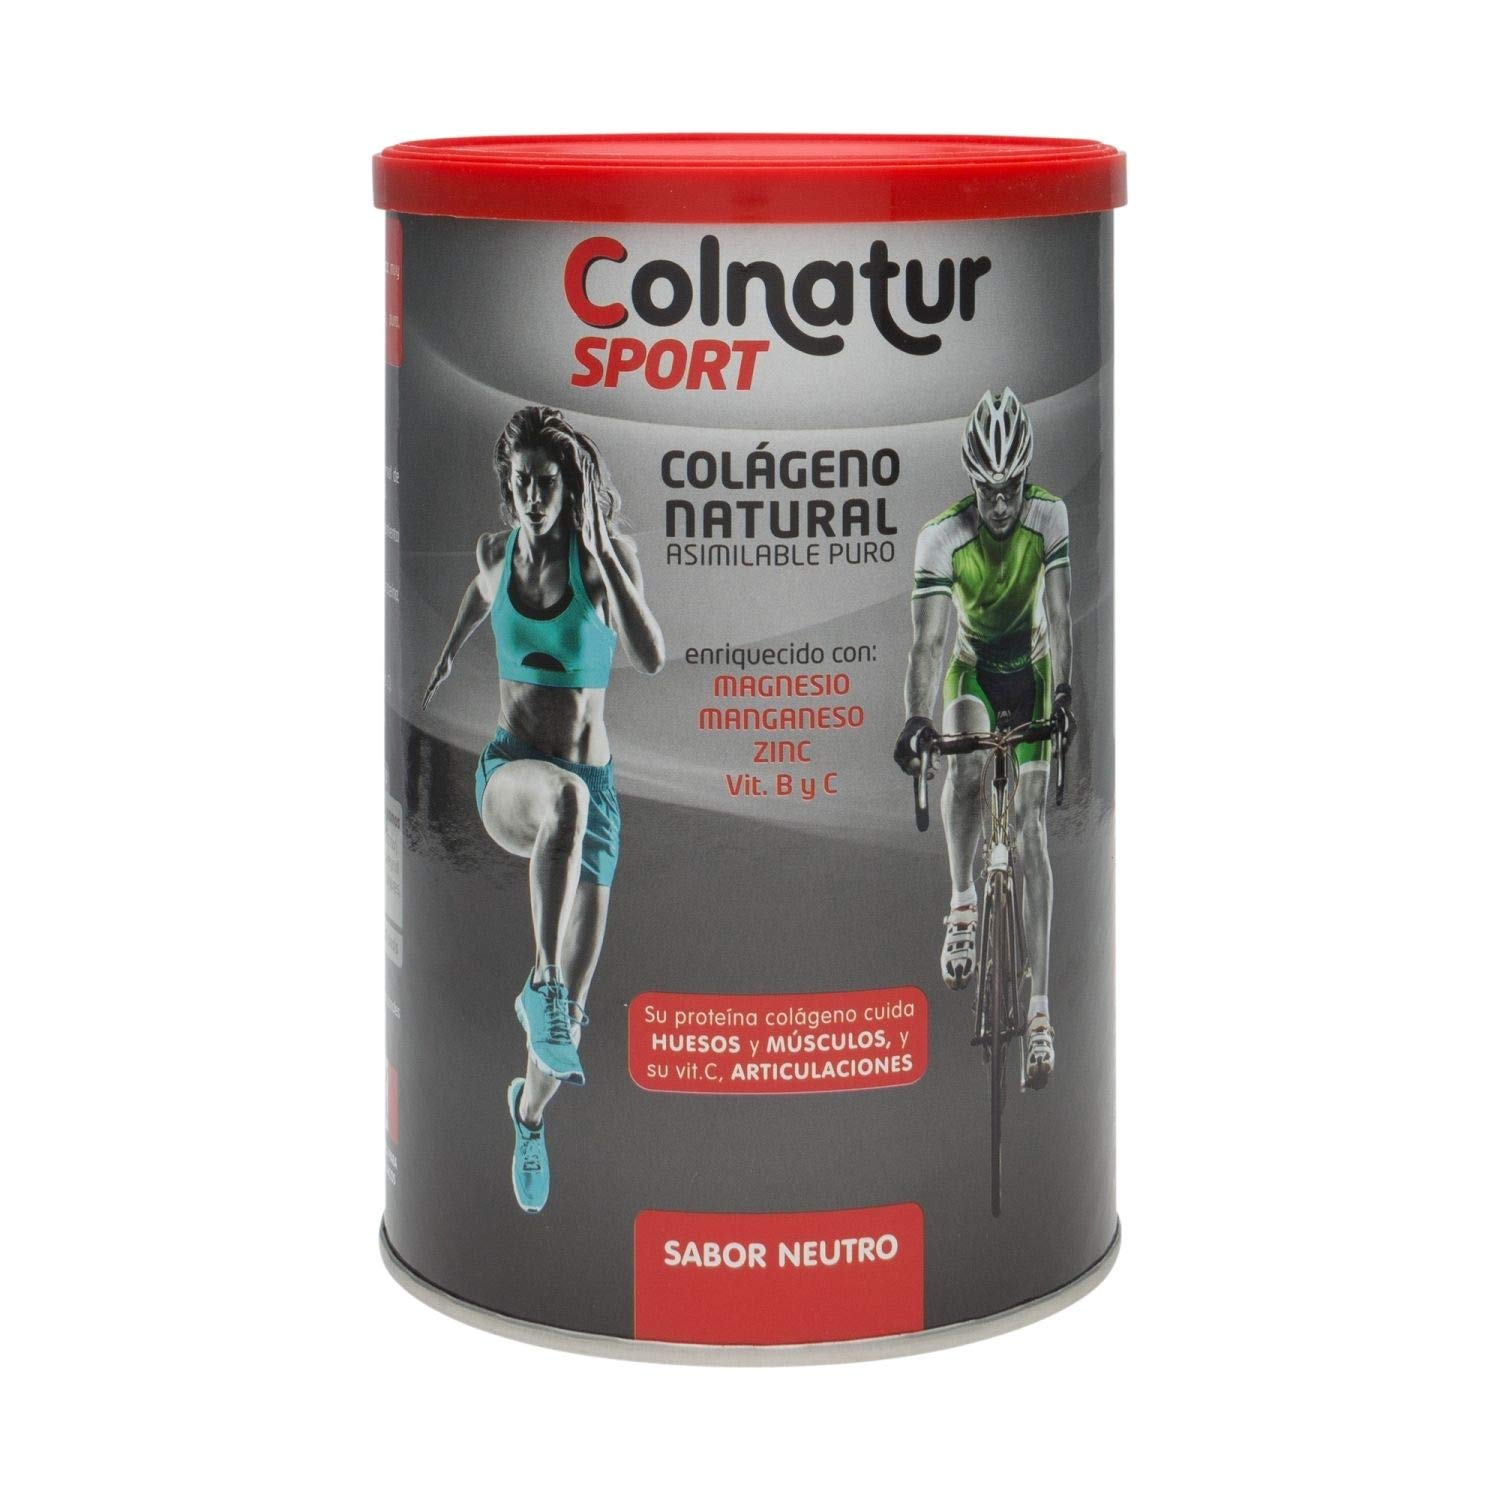 Amazon.com: Colnatur Sport Natural Collagen Neutral Flavor 330gr - Collagen Proteins - Magnesium - Vitamin C - Increase Your Muscle Mass - Care of Joints: ...